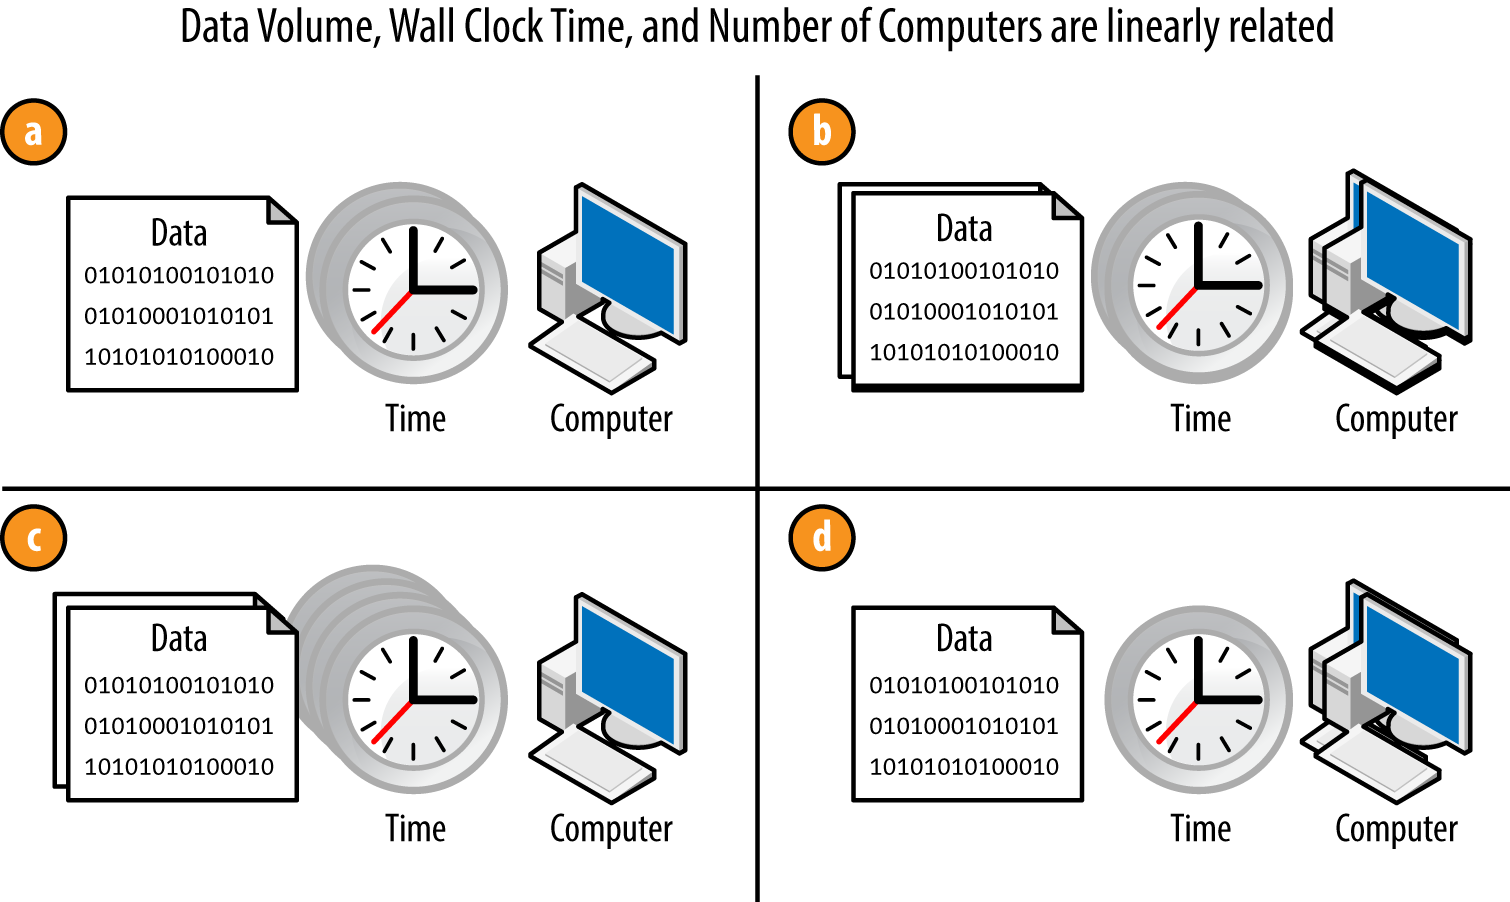 Hadoop linear scalability. By changing the amount of data or the number of computers, you can impact the amount of time you need to run a Hadoop application.